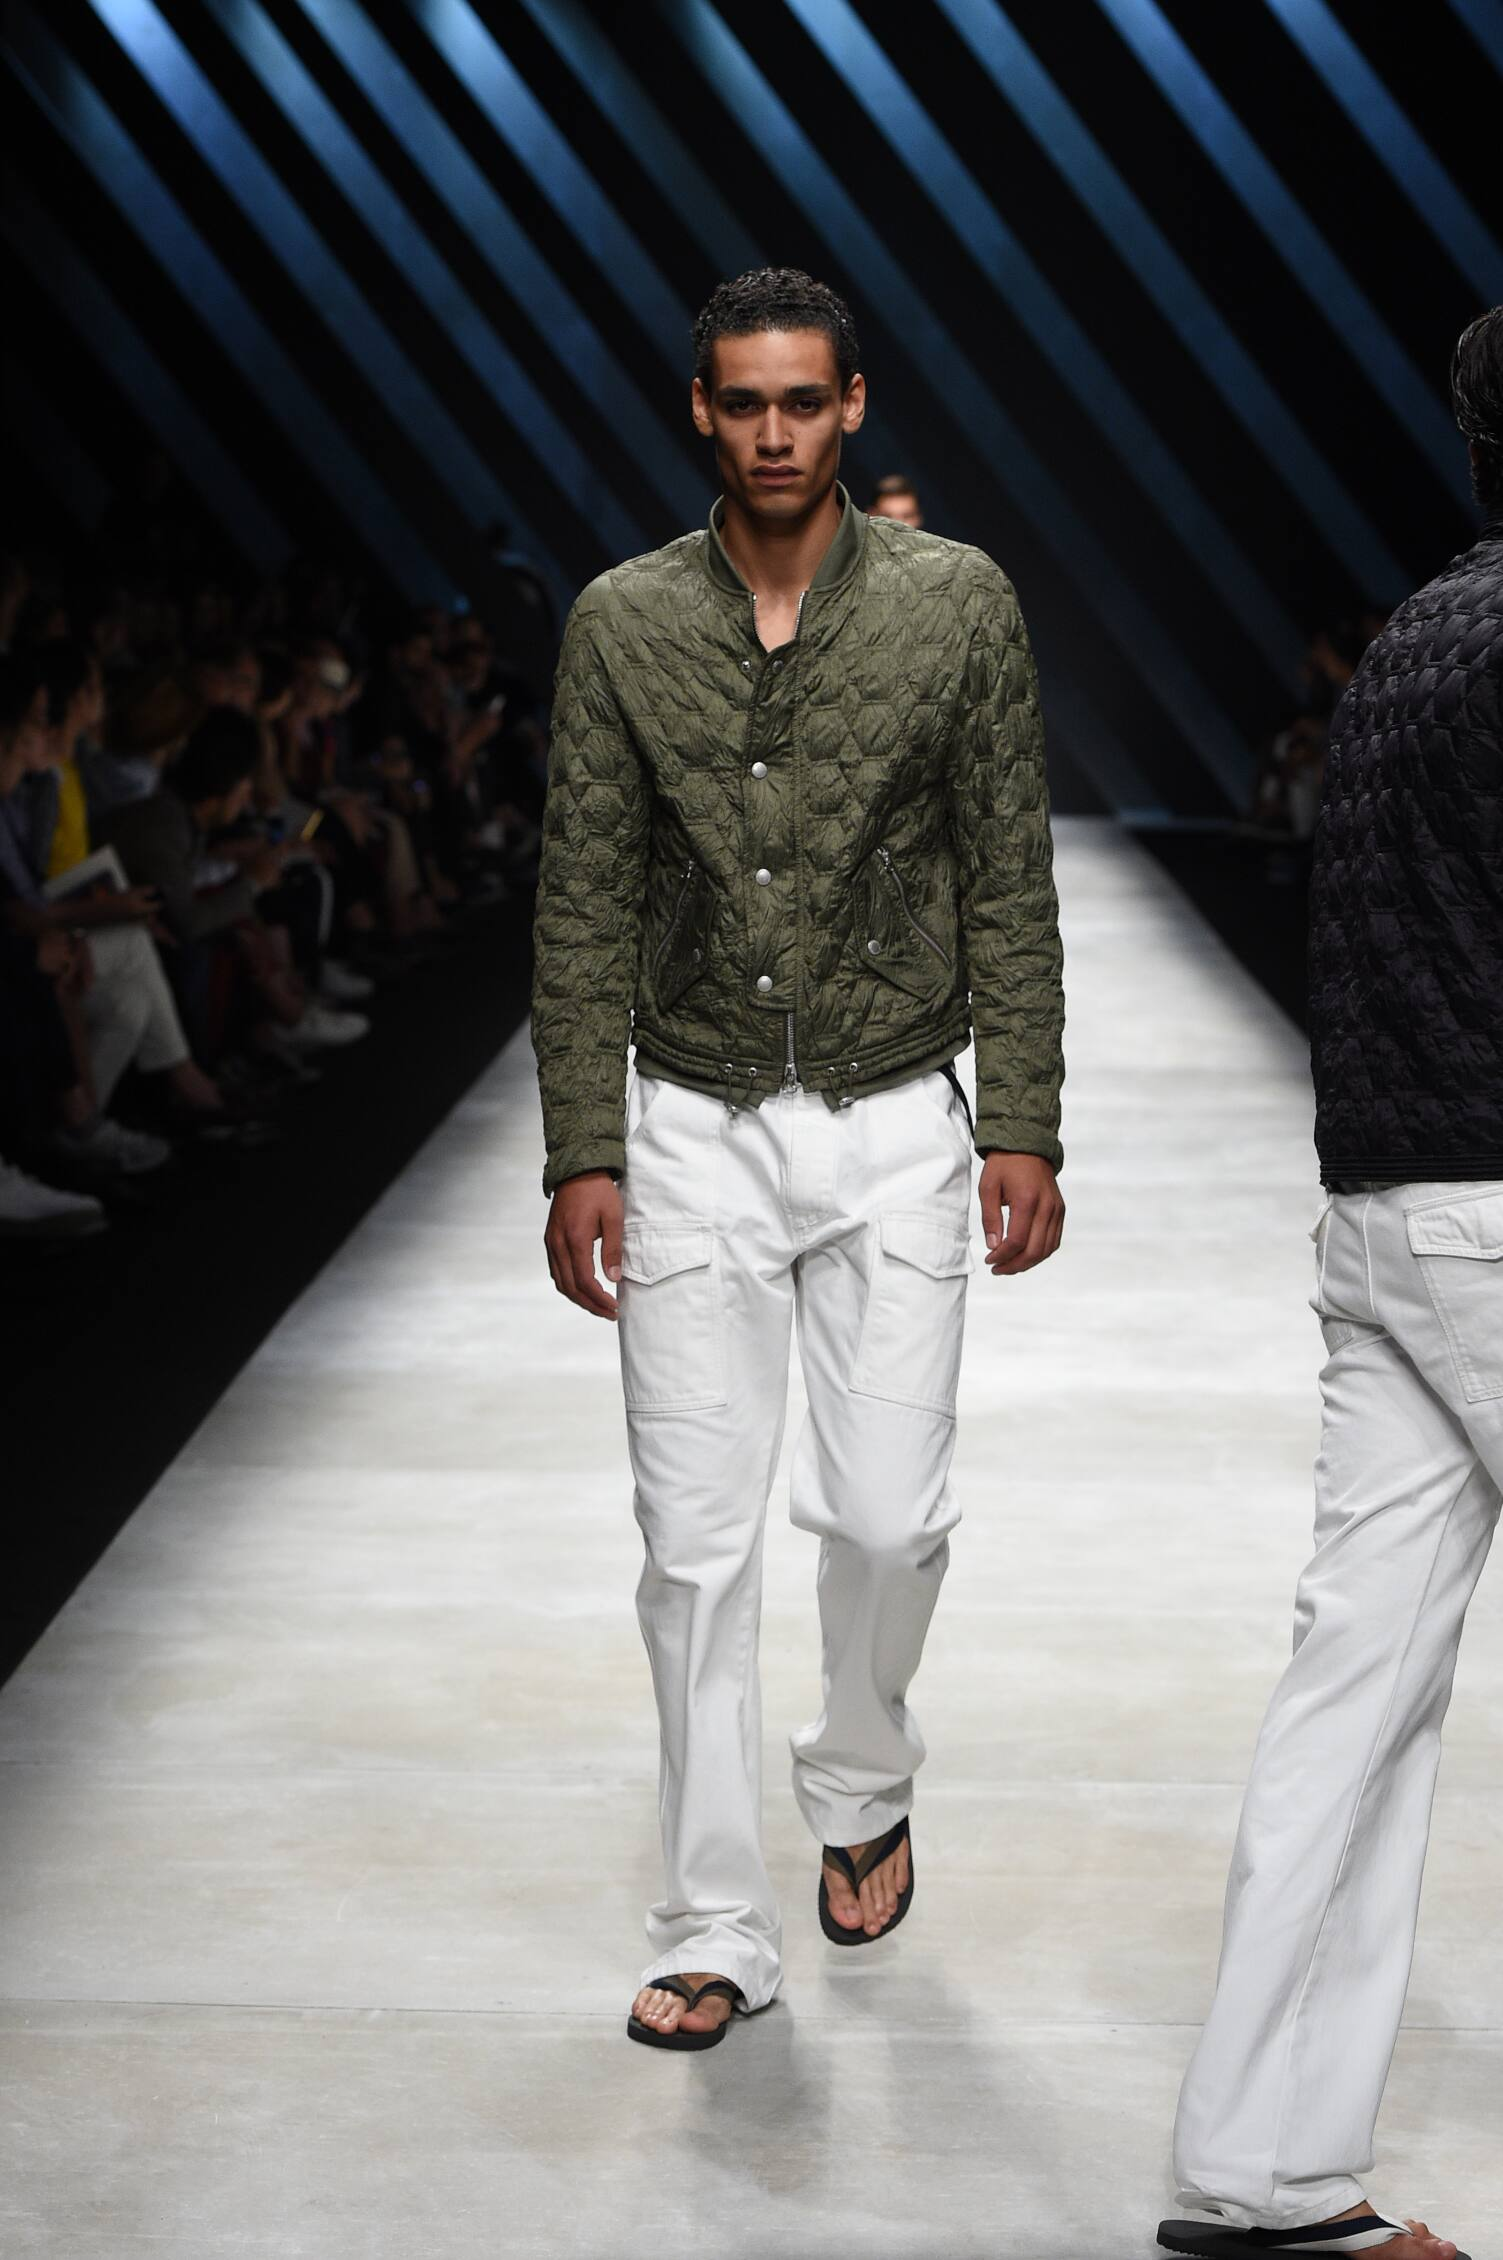 Catwalk Ermanno Scervino Spring Summer 2016 Men's Collection Milan Fashion Week